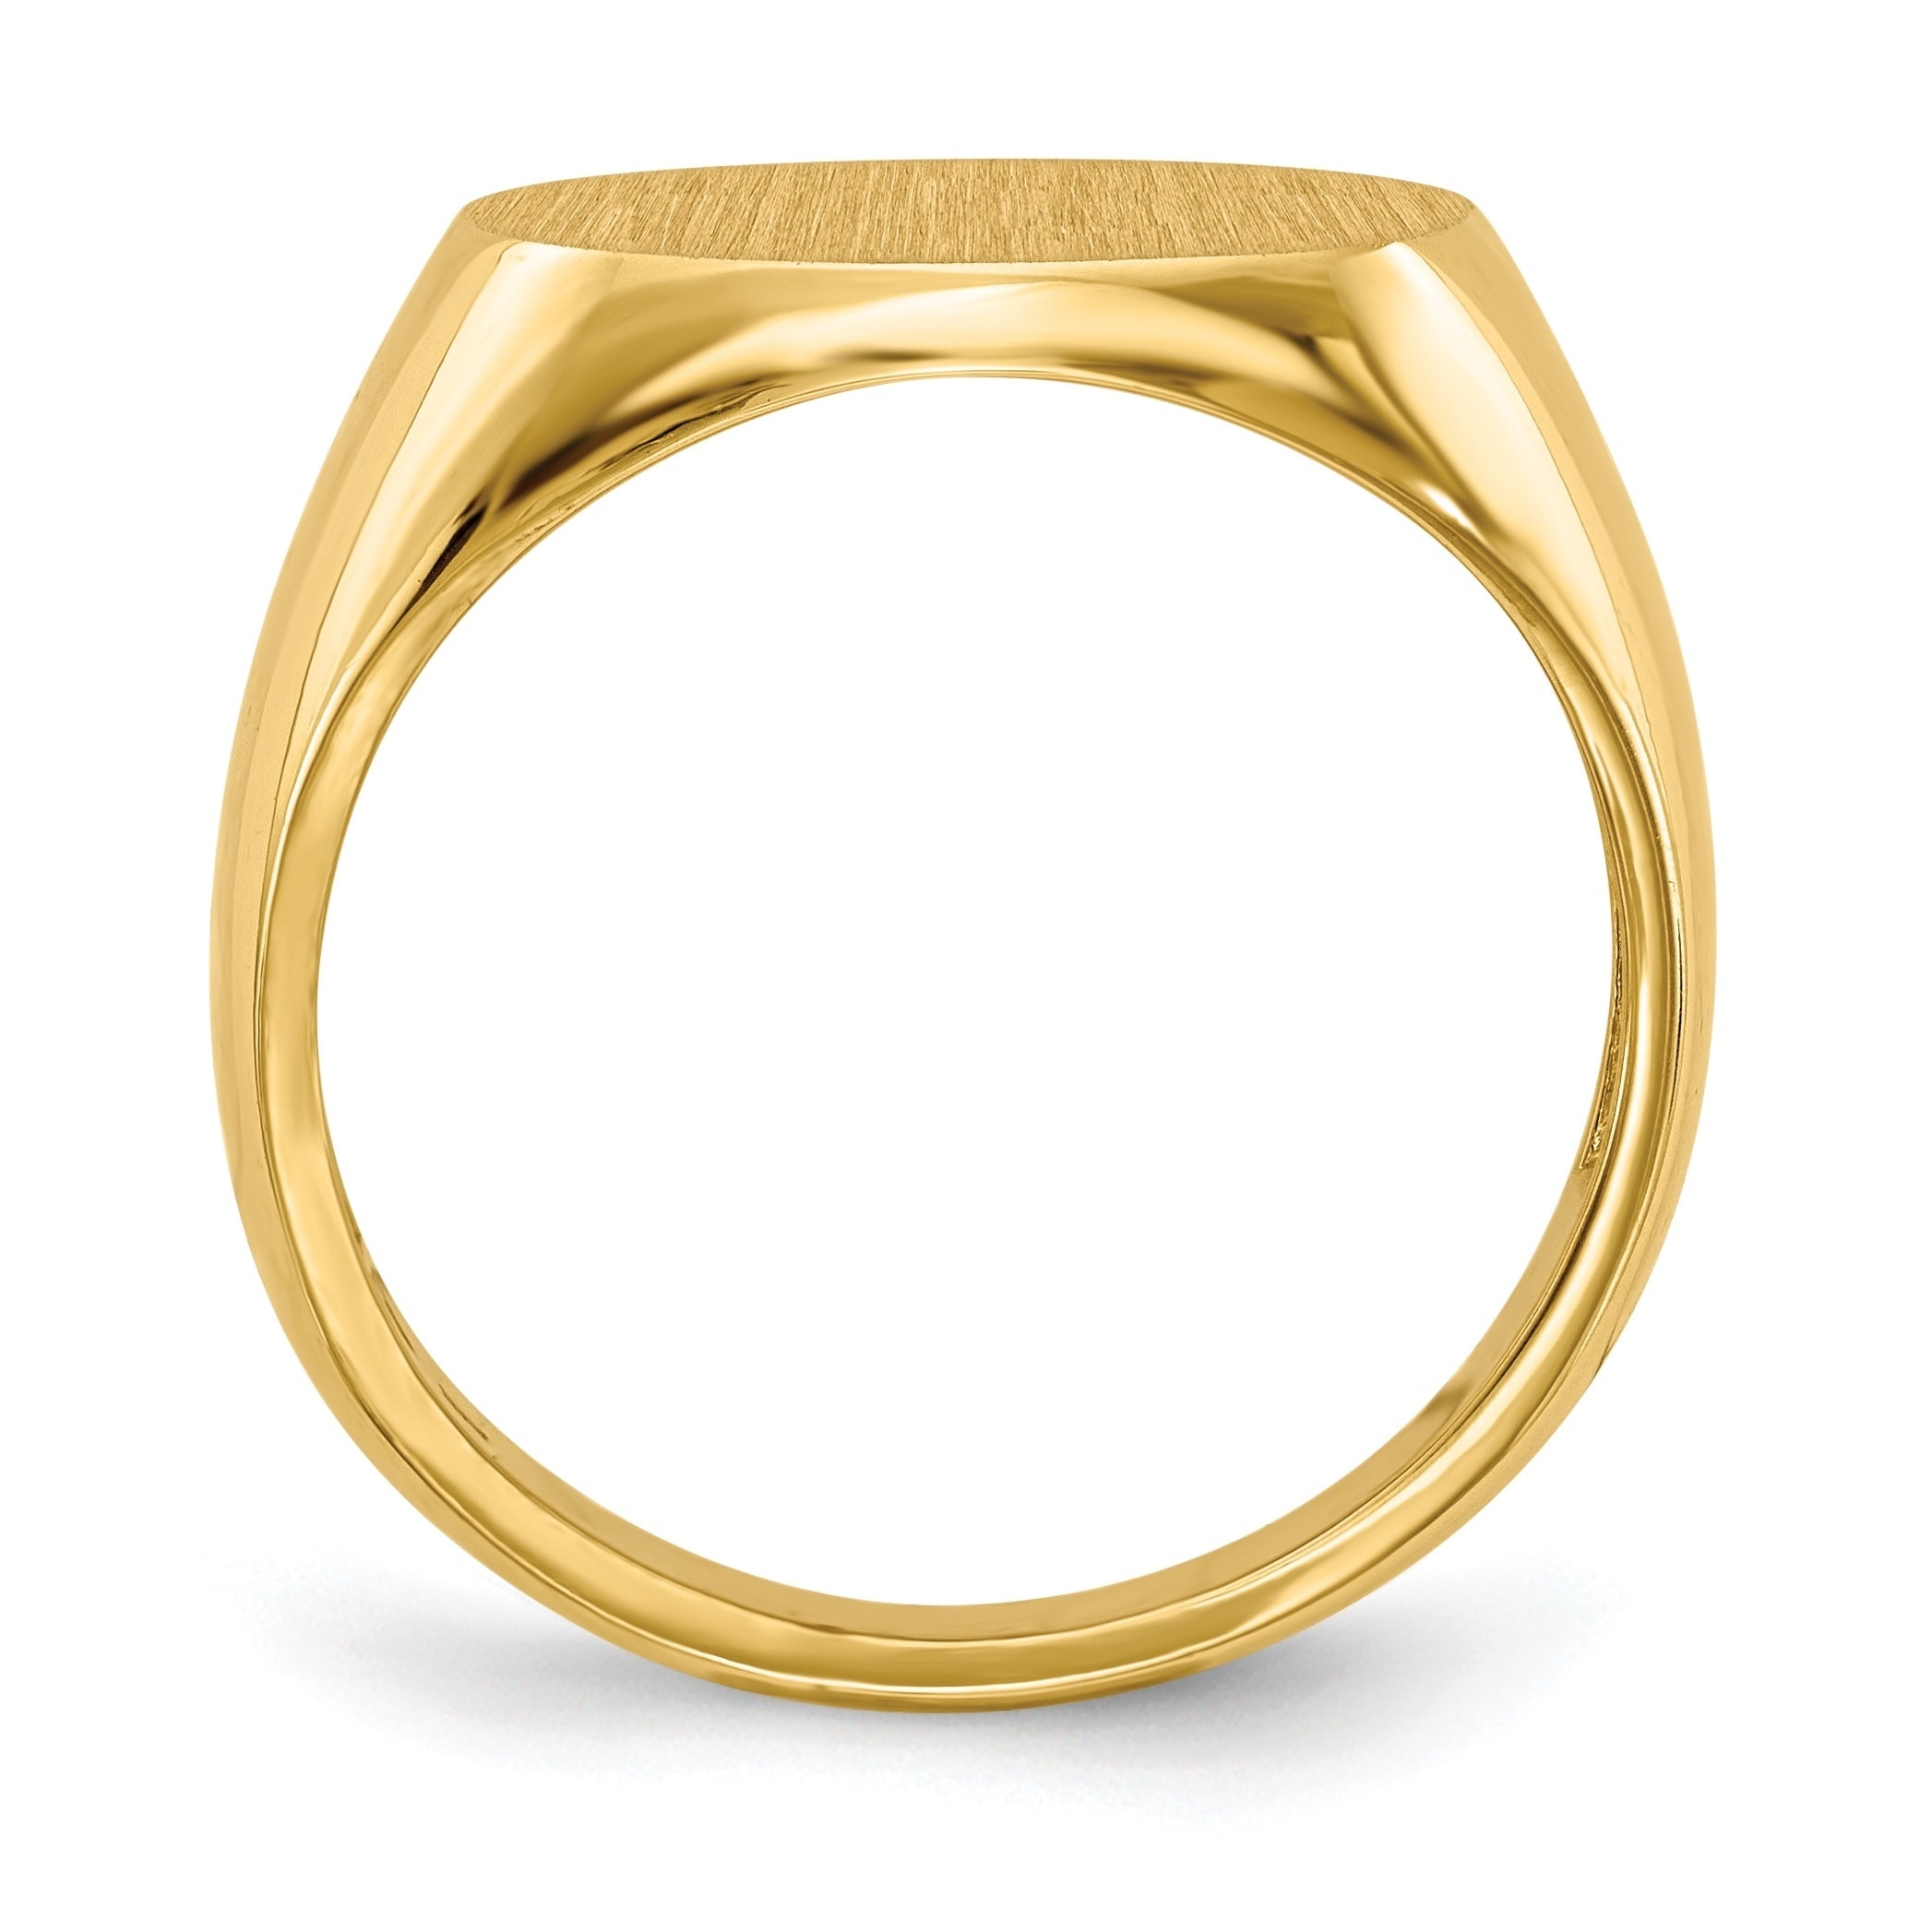 f20136e58026c5 Shop Versil Men's 14 Karat Gold Tapered Signet Ring - On Sale - Free  Shipping Today - Overstock - 11967680